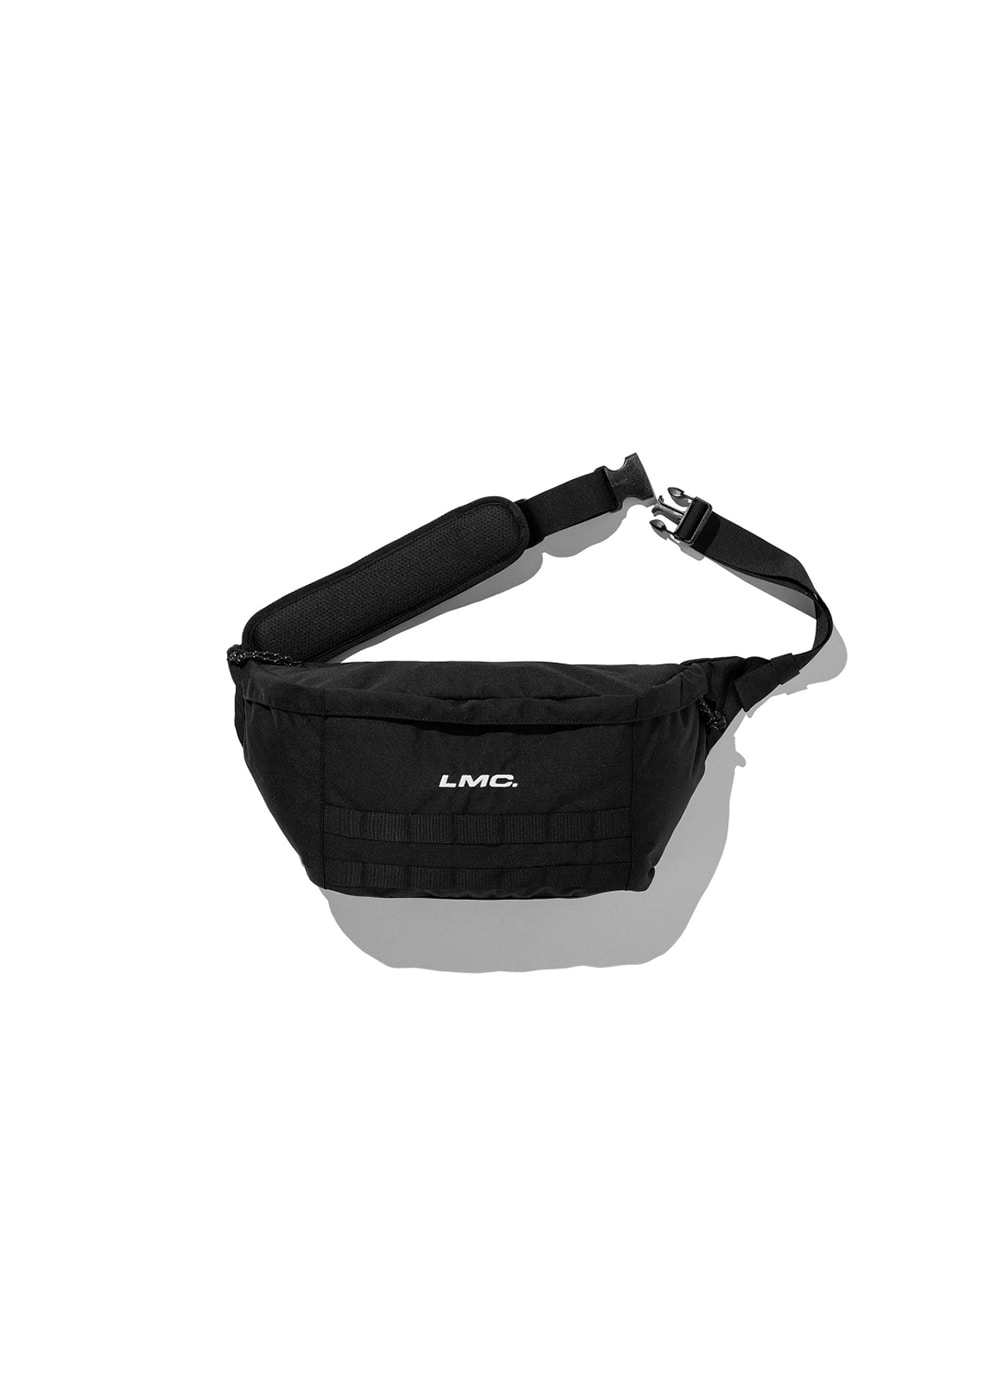 LMC SYSTEM LARGE WAIST PACK black